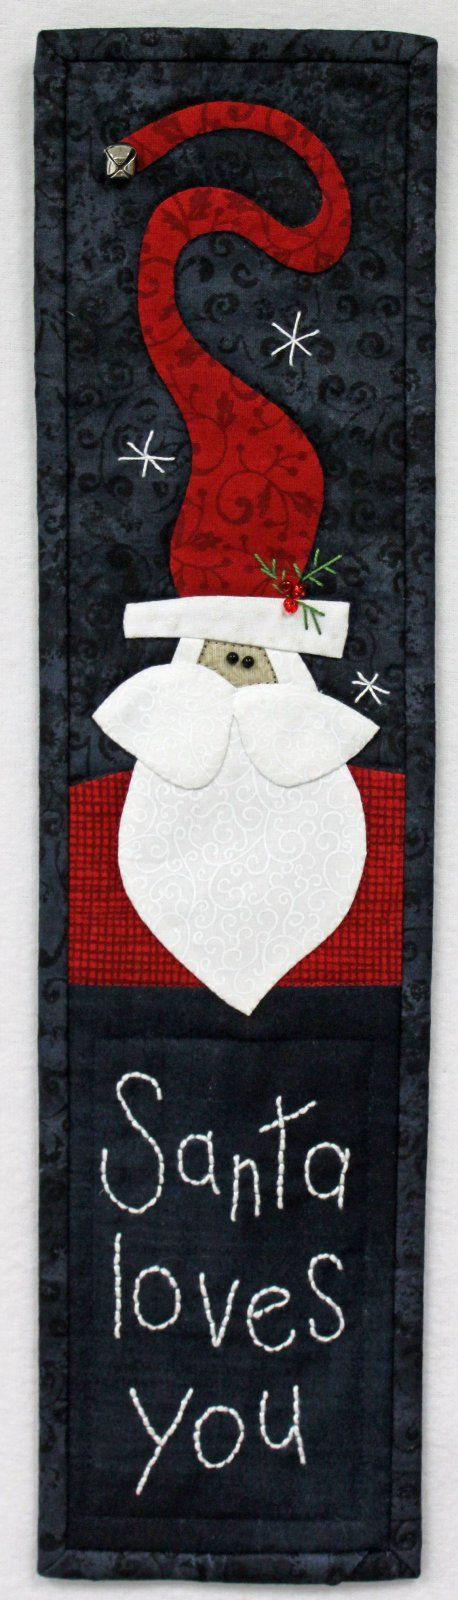 Santa Loves You Pattern